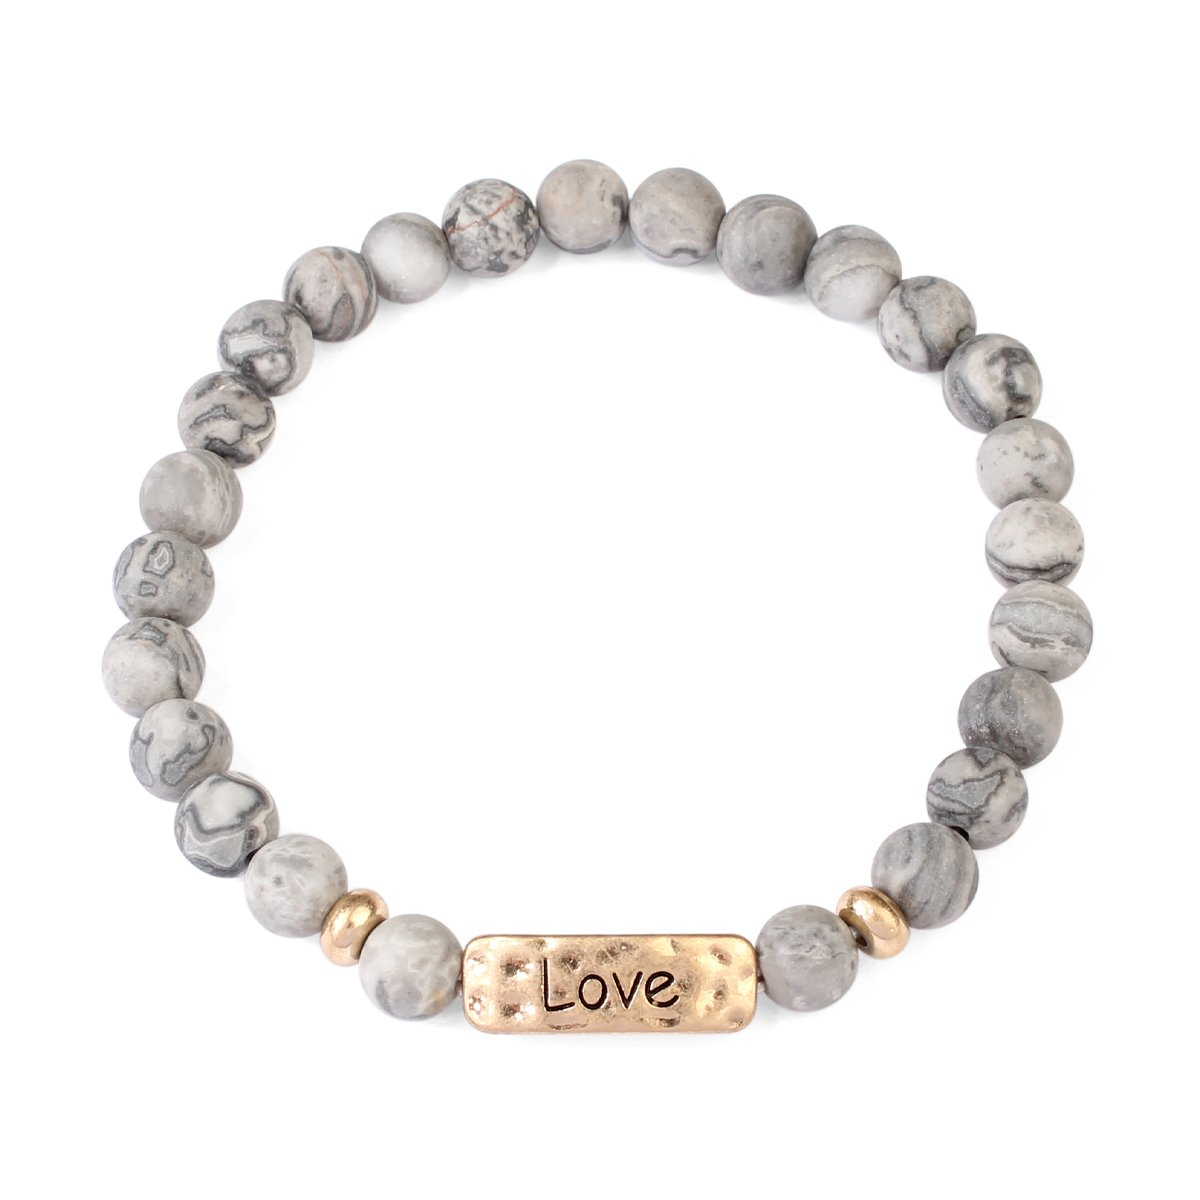 MYS Collection Blessed, Faith, Love and Hope Natural Stone Stretch Bracelet - Religious Engraved Message Bracelets 83382LCTG